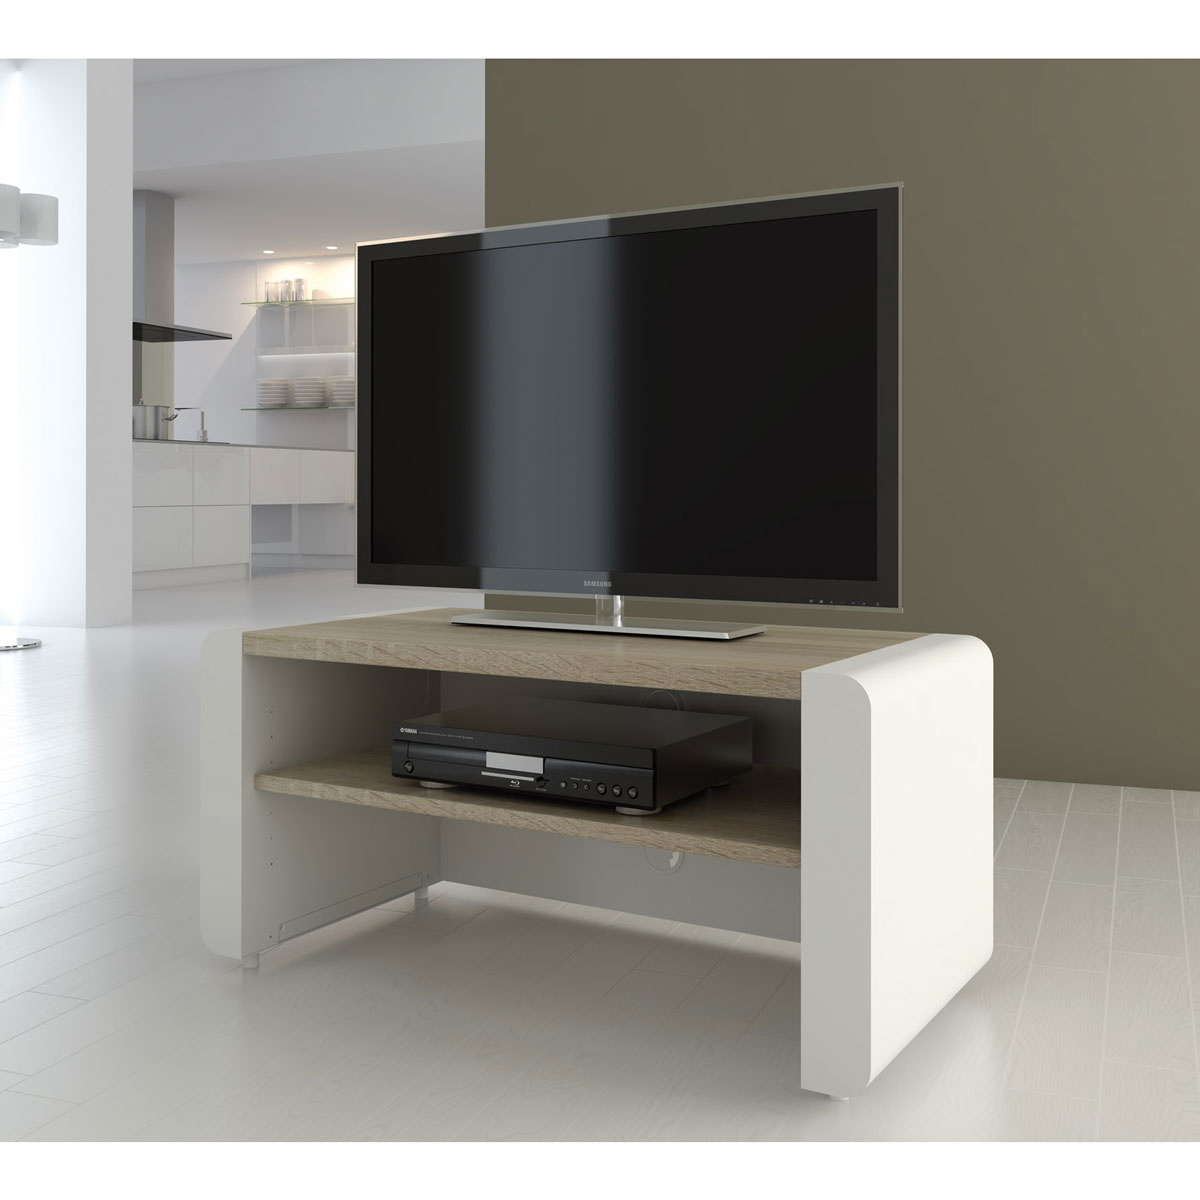 Tv Mbel Ecke Amazing Beta Avantgarde Tvschrank With Tv Mbel Ecke